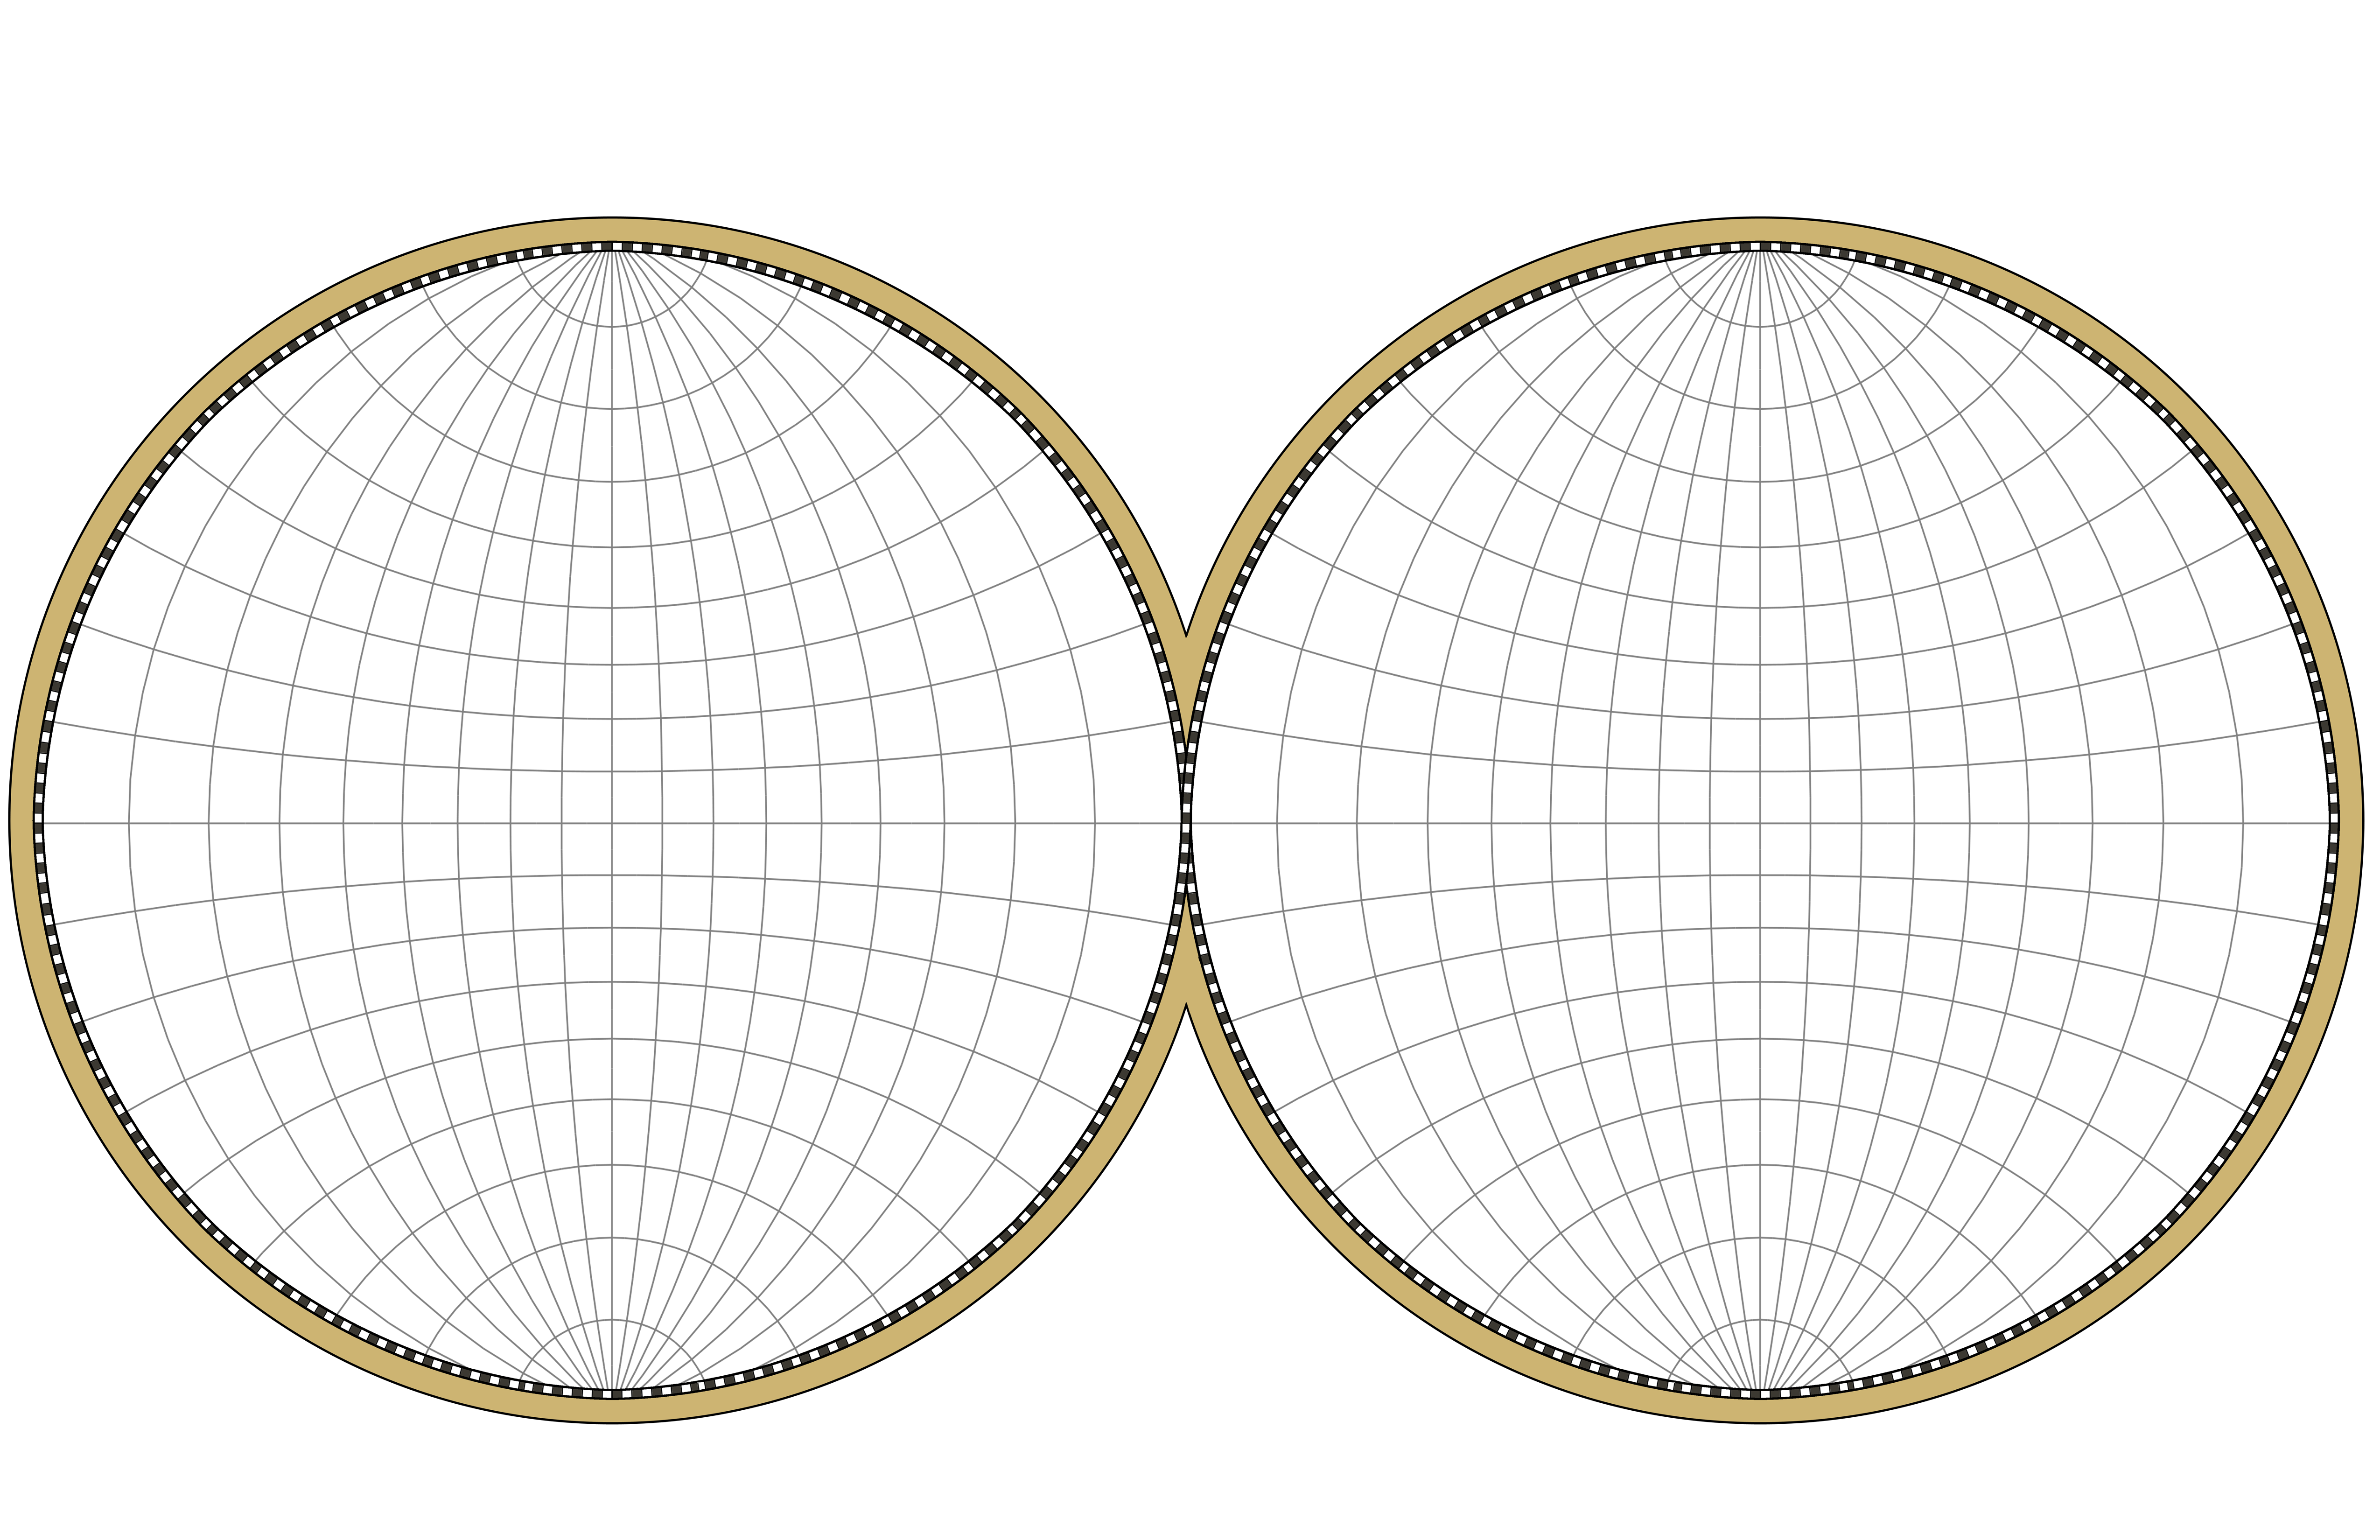 Step 3: the double-hemisphere frame